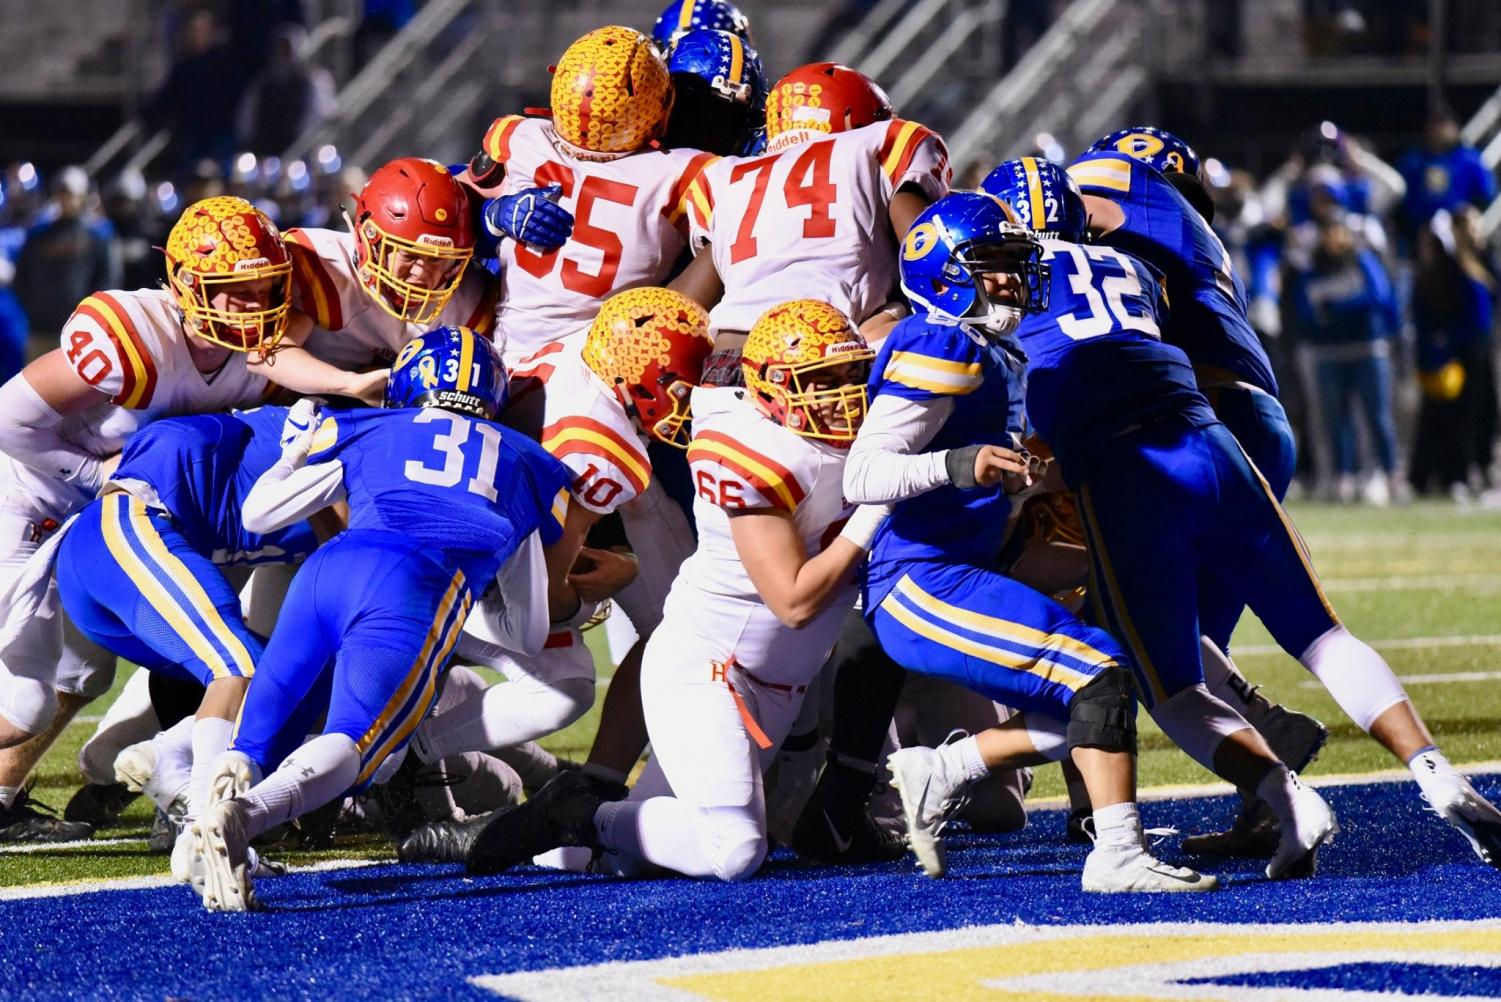 The Fords fight hard but fail to keep the Whippets out of the end zone. The final score of the exciting District Playoff game was Downingtown West 49 and Haverford 42.